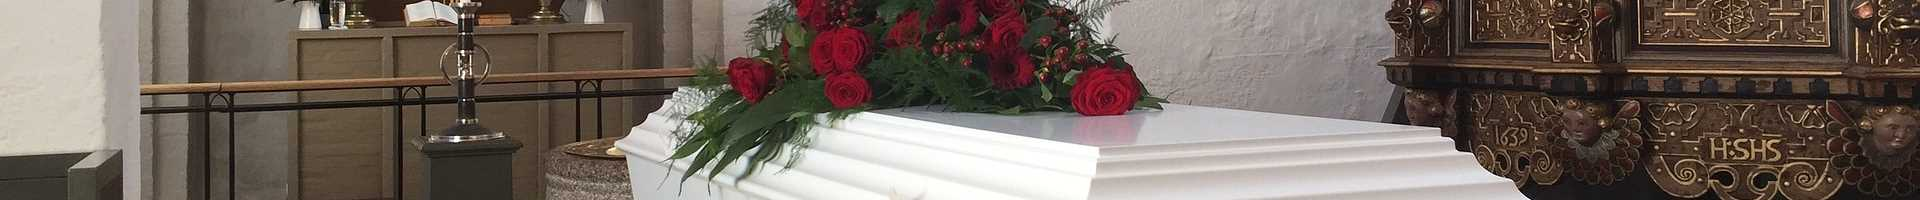 Casket with Roses